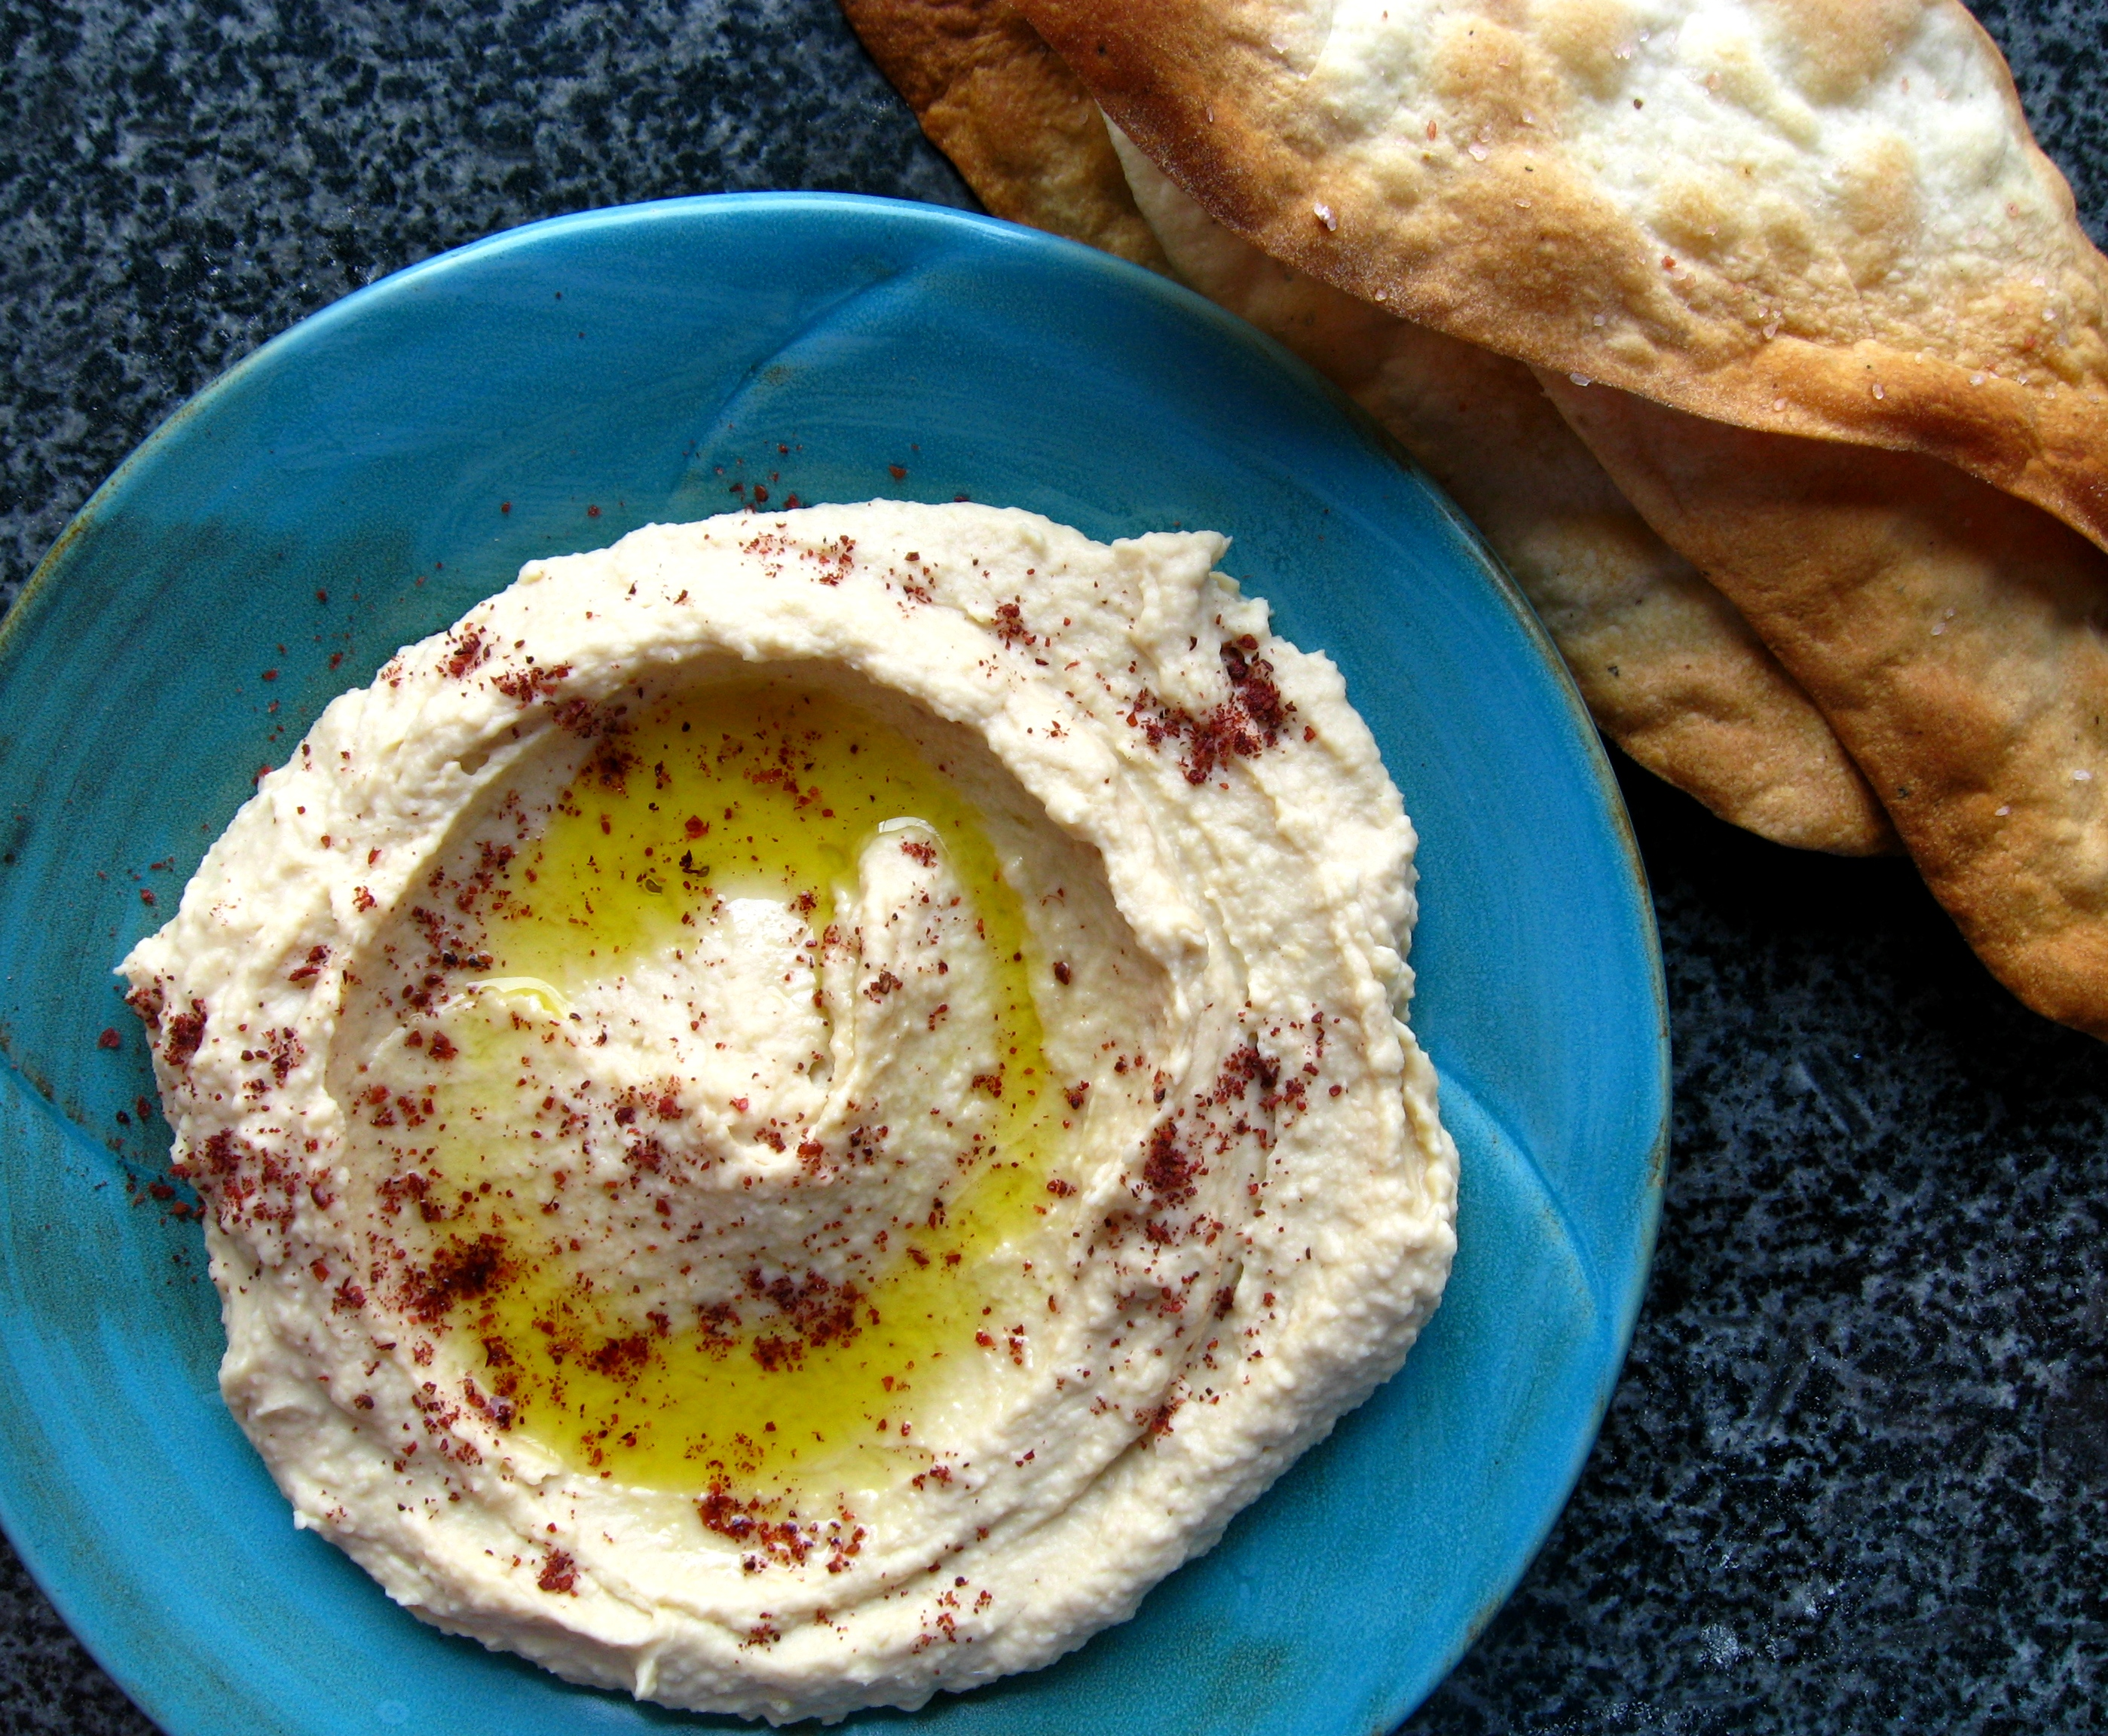 Garlicky Hummus with Olive Oil Crackers